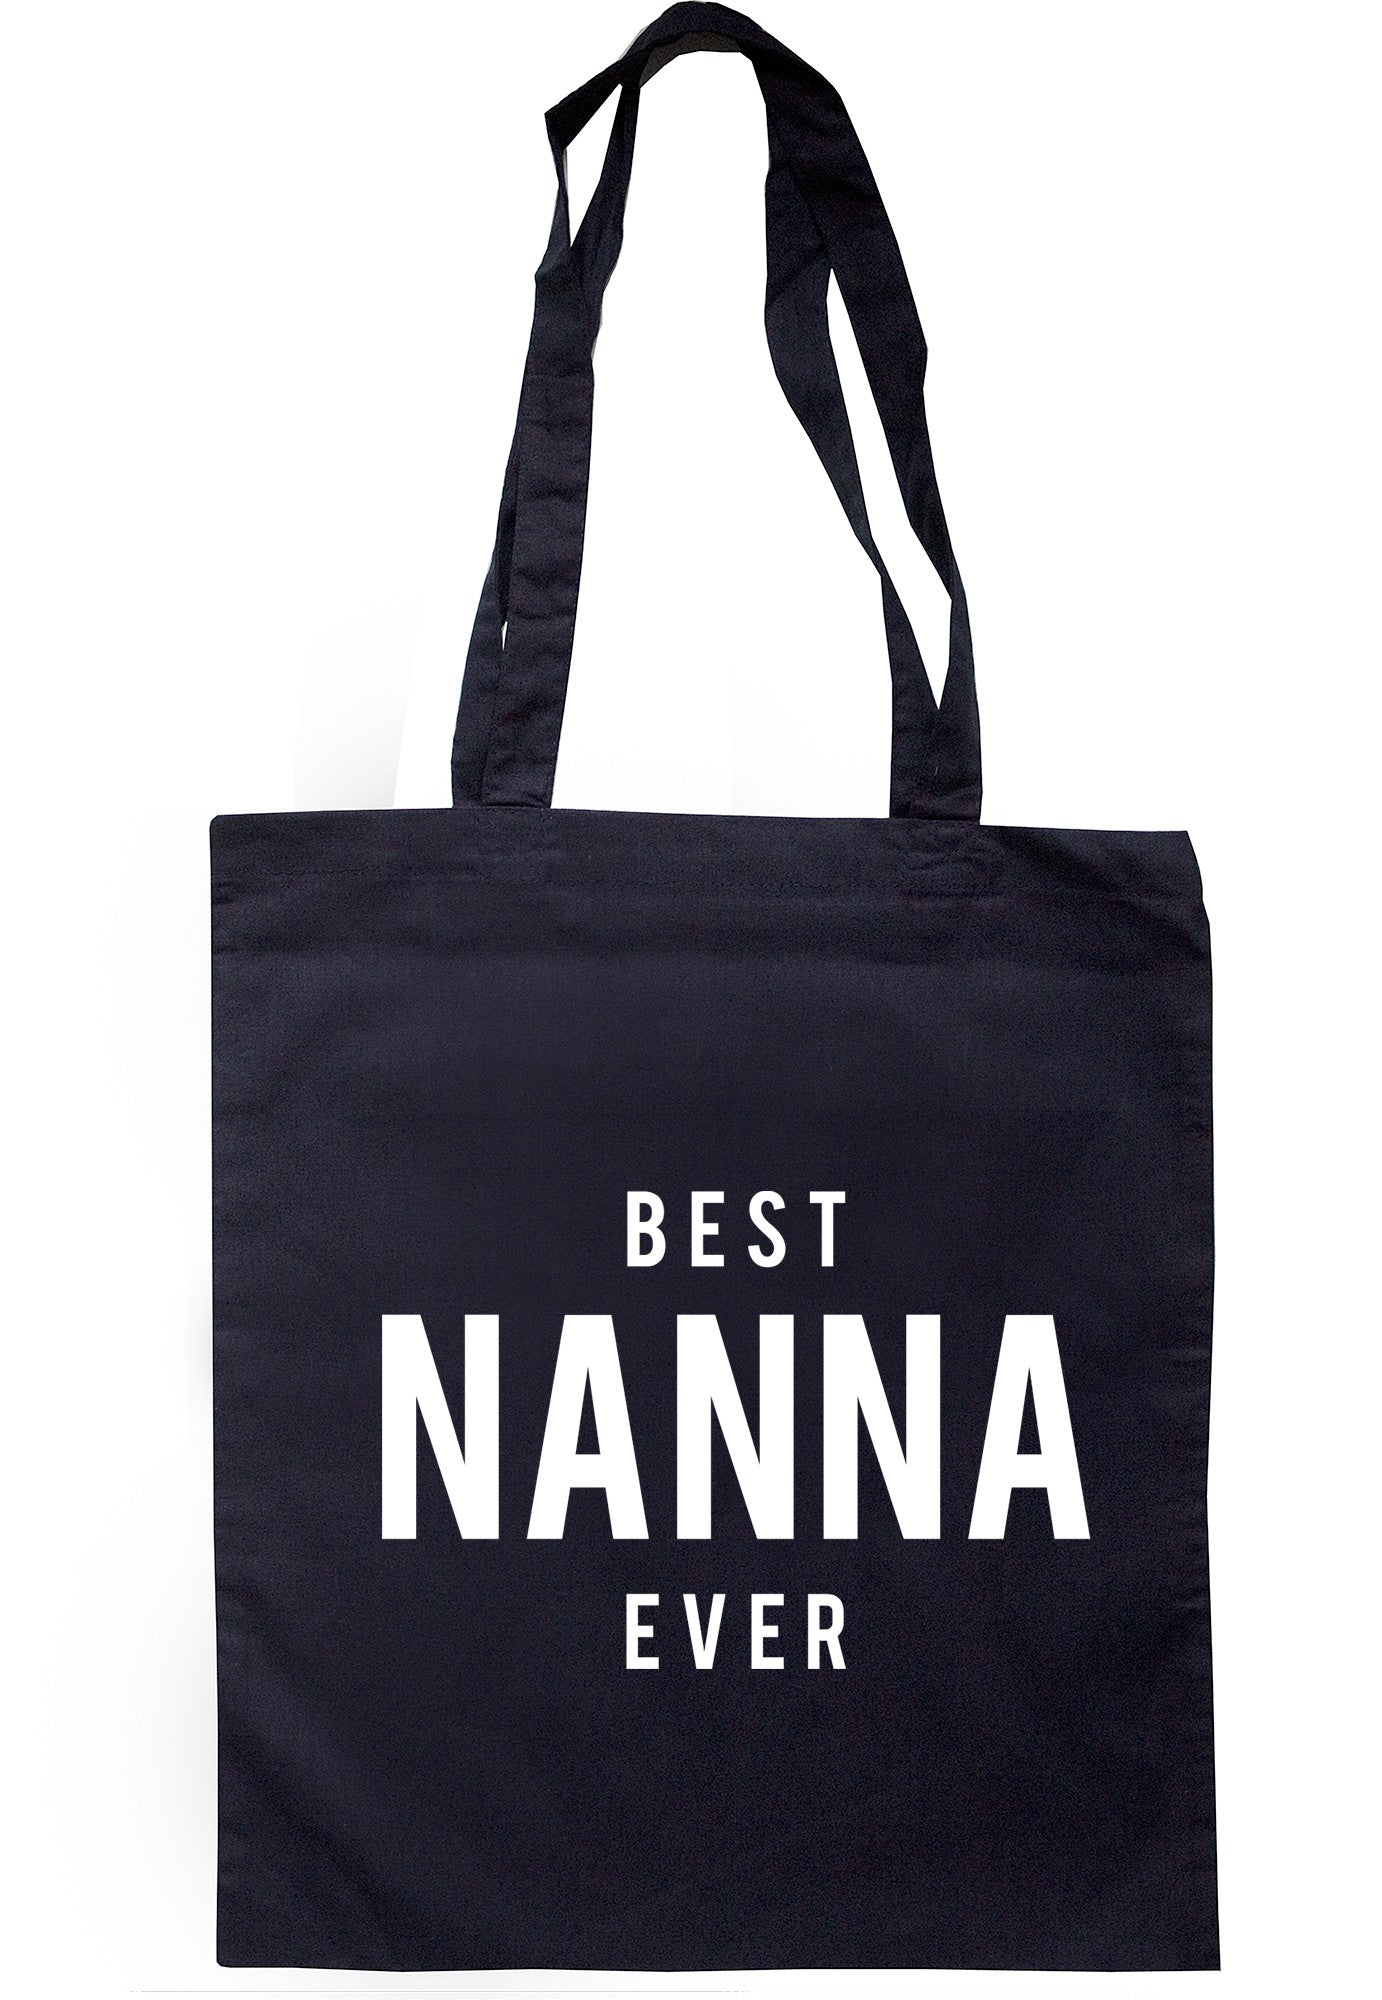 Best Nanna Ever Tote Bag TB1251